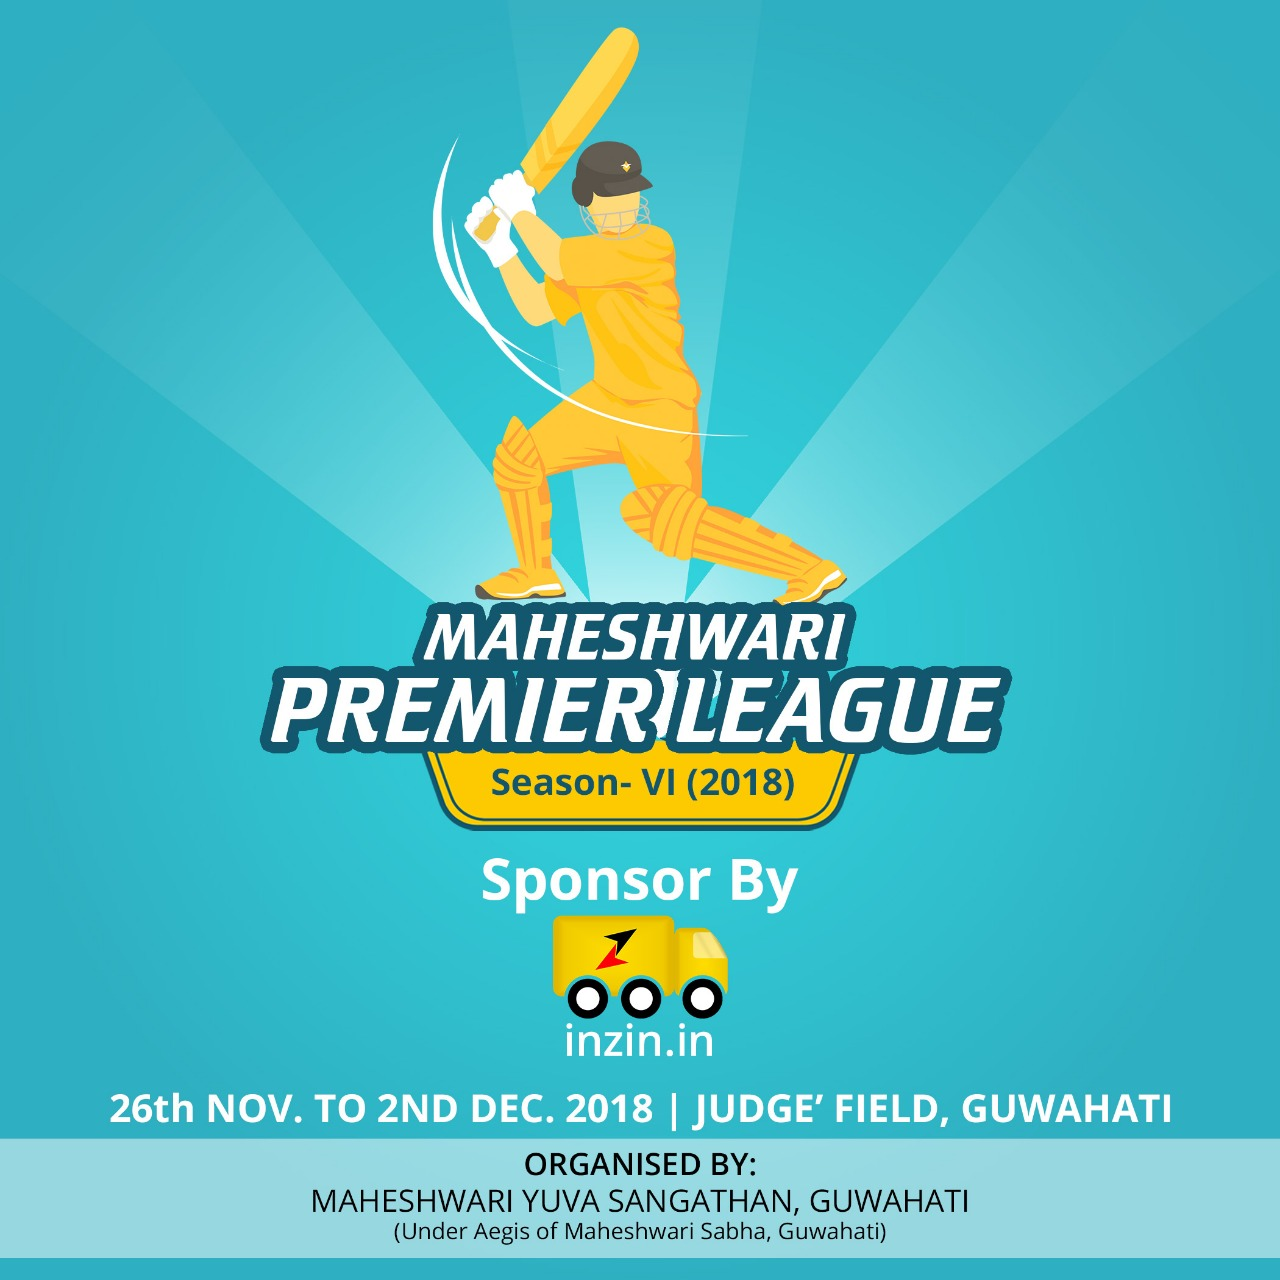 Maheshwari Premier League Sponsor by INZIN